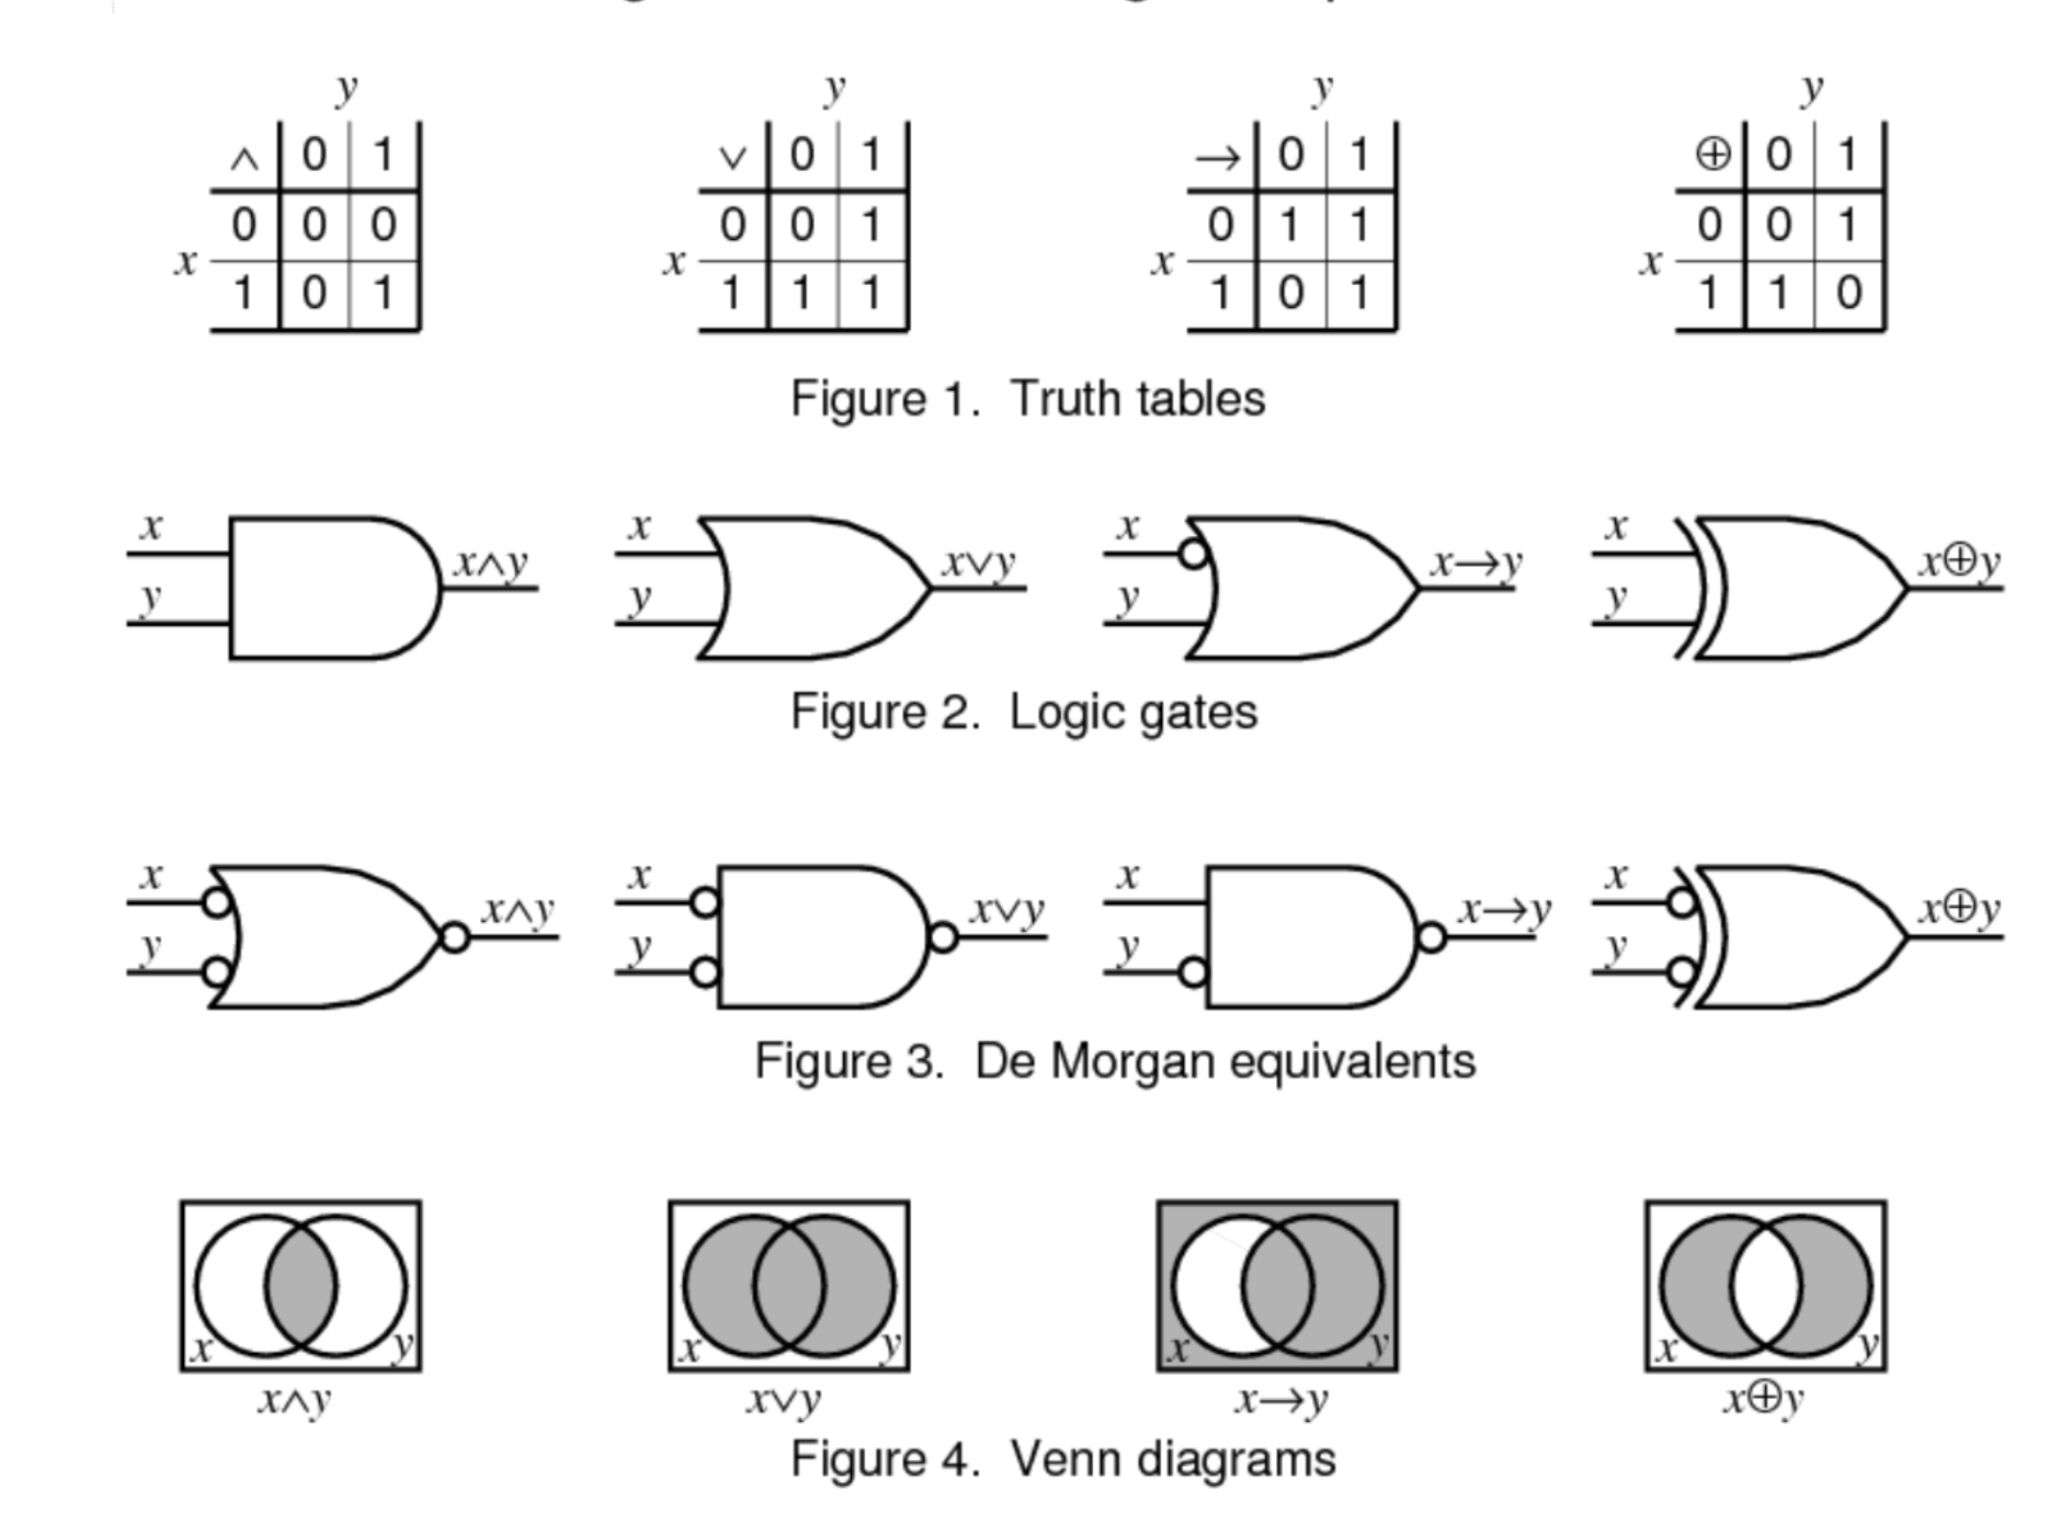 Booleon Logic: Truth Tables, Logic Gates, Venn Diagrams